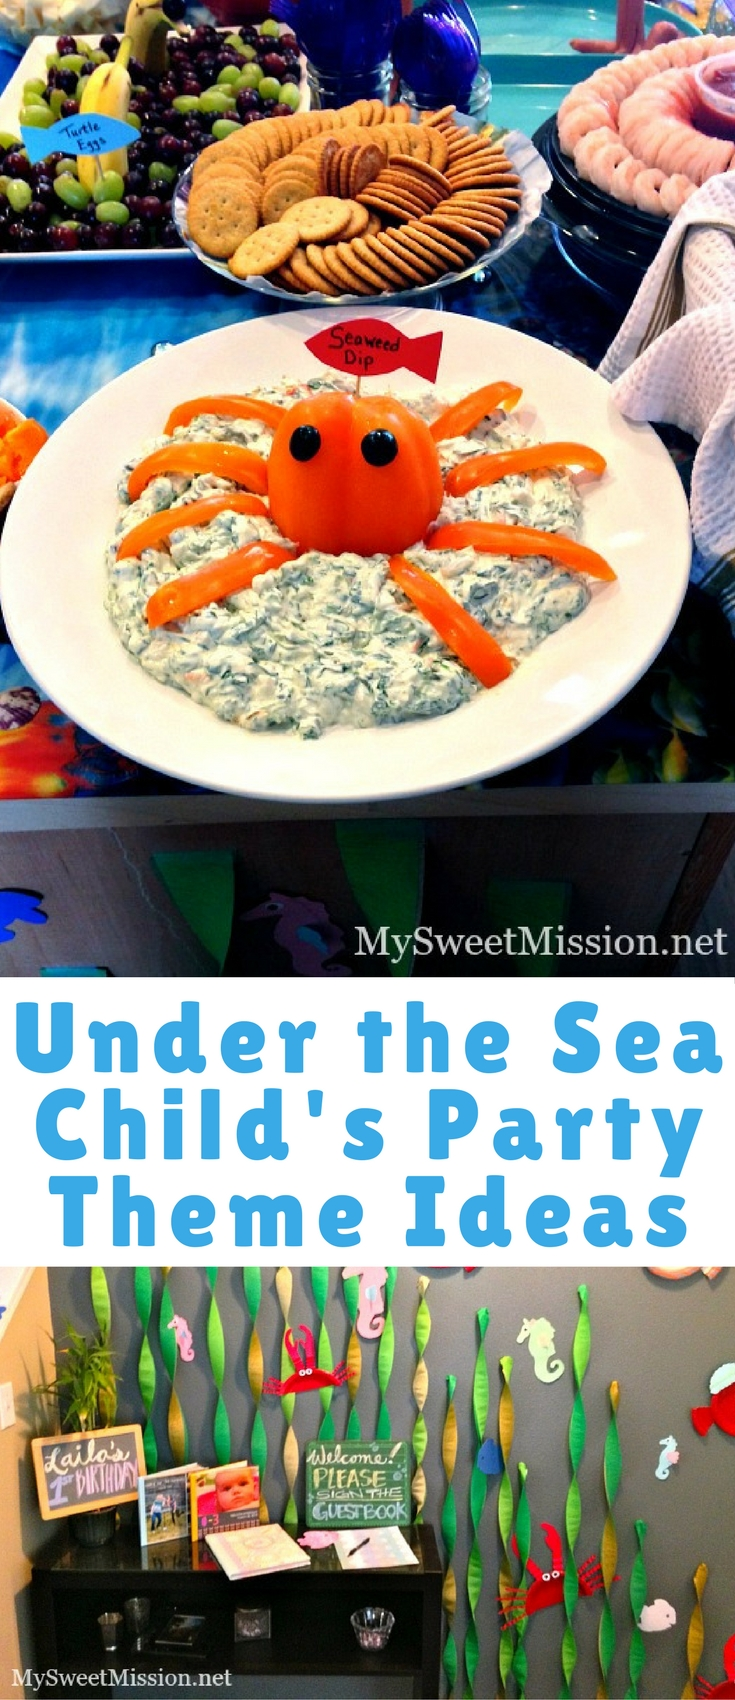 Today we're sharing some adorable Under the Sea Child's Party Theme Ideas from our granddaughter, Laila's 1st birthday party.